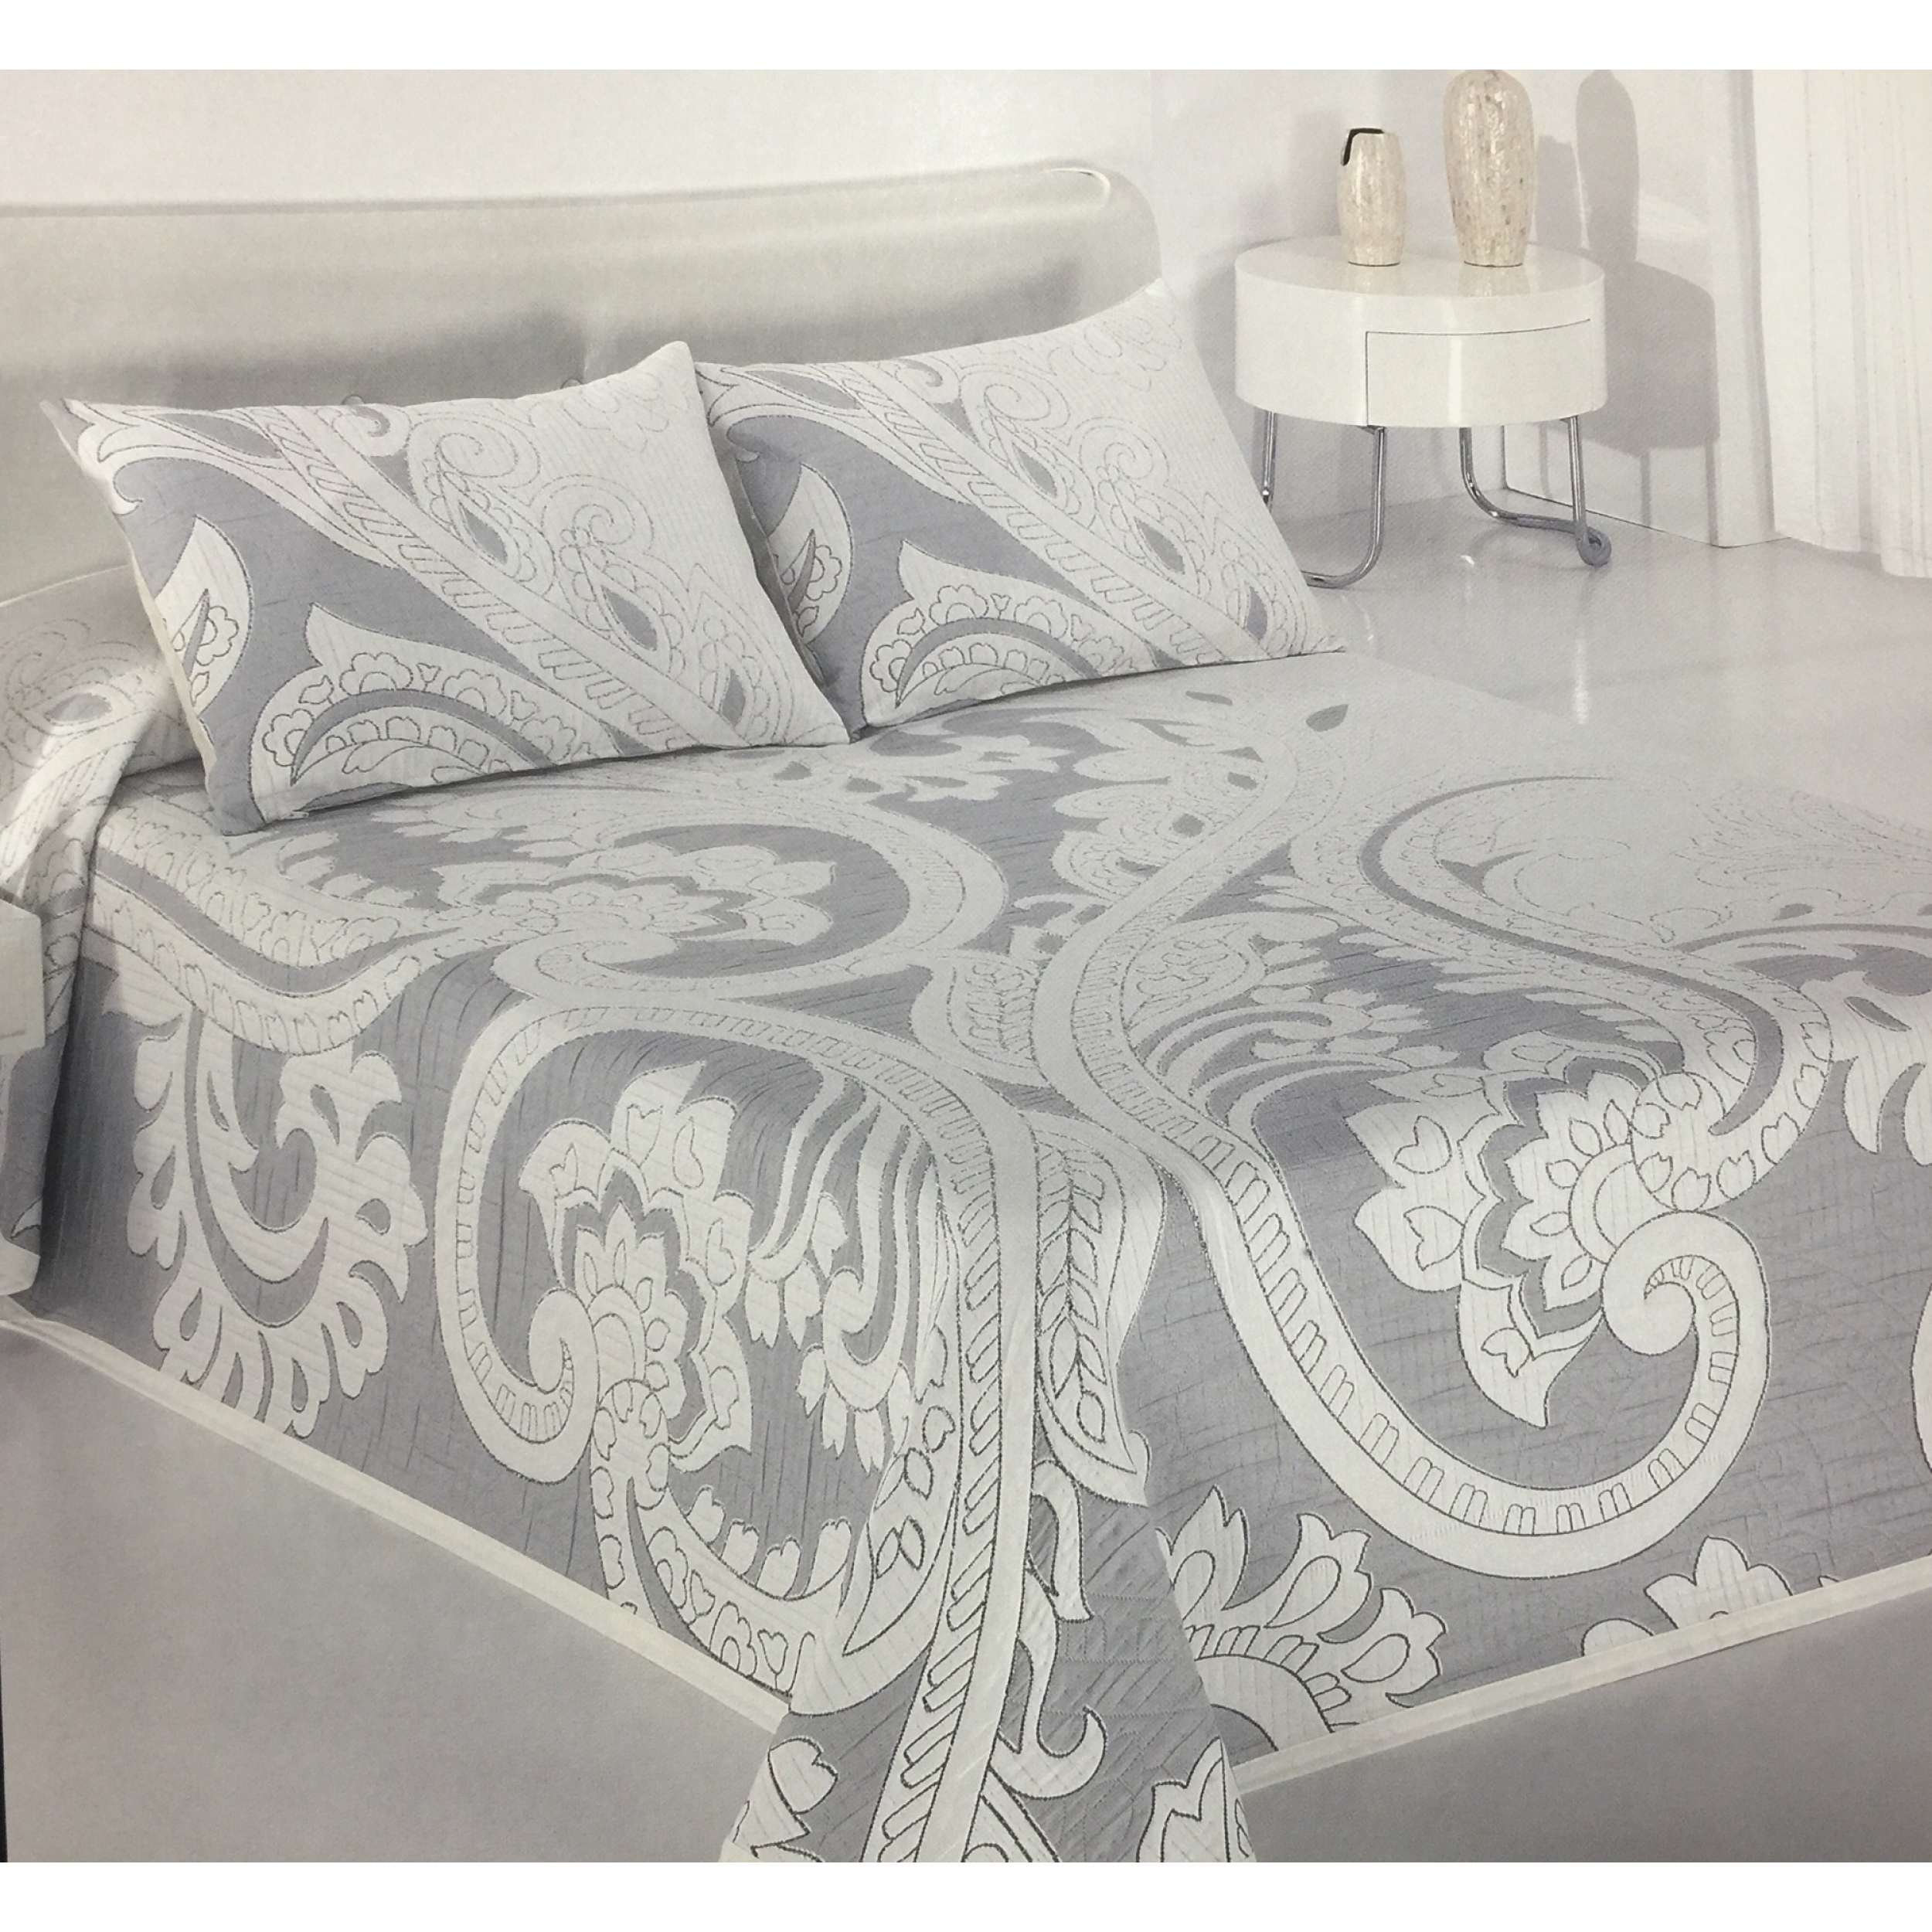 jet de lit budeos gris bleu pour lit de 160 cm l 39 atelier de la toile. Black Bedroom Furniture Sets. Home Design Ideas